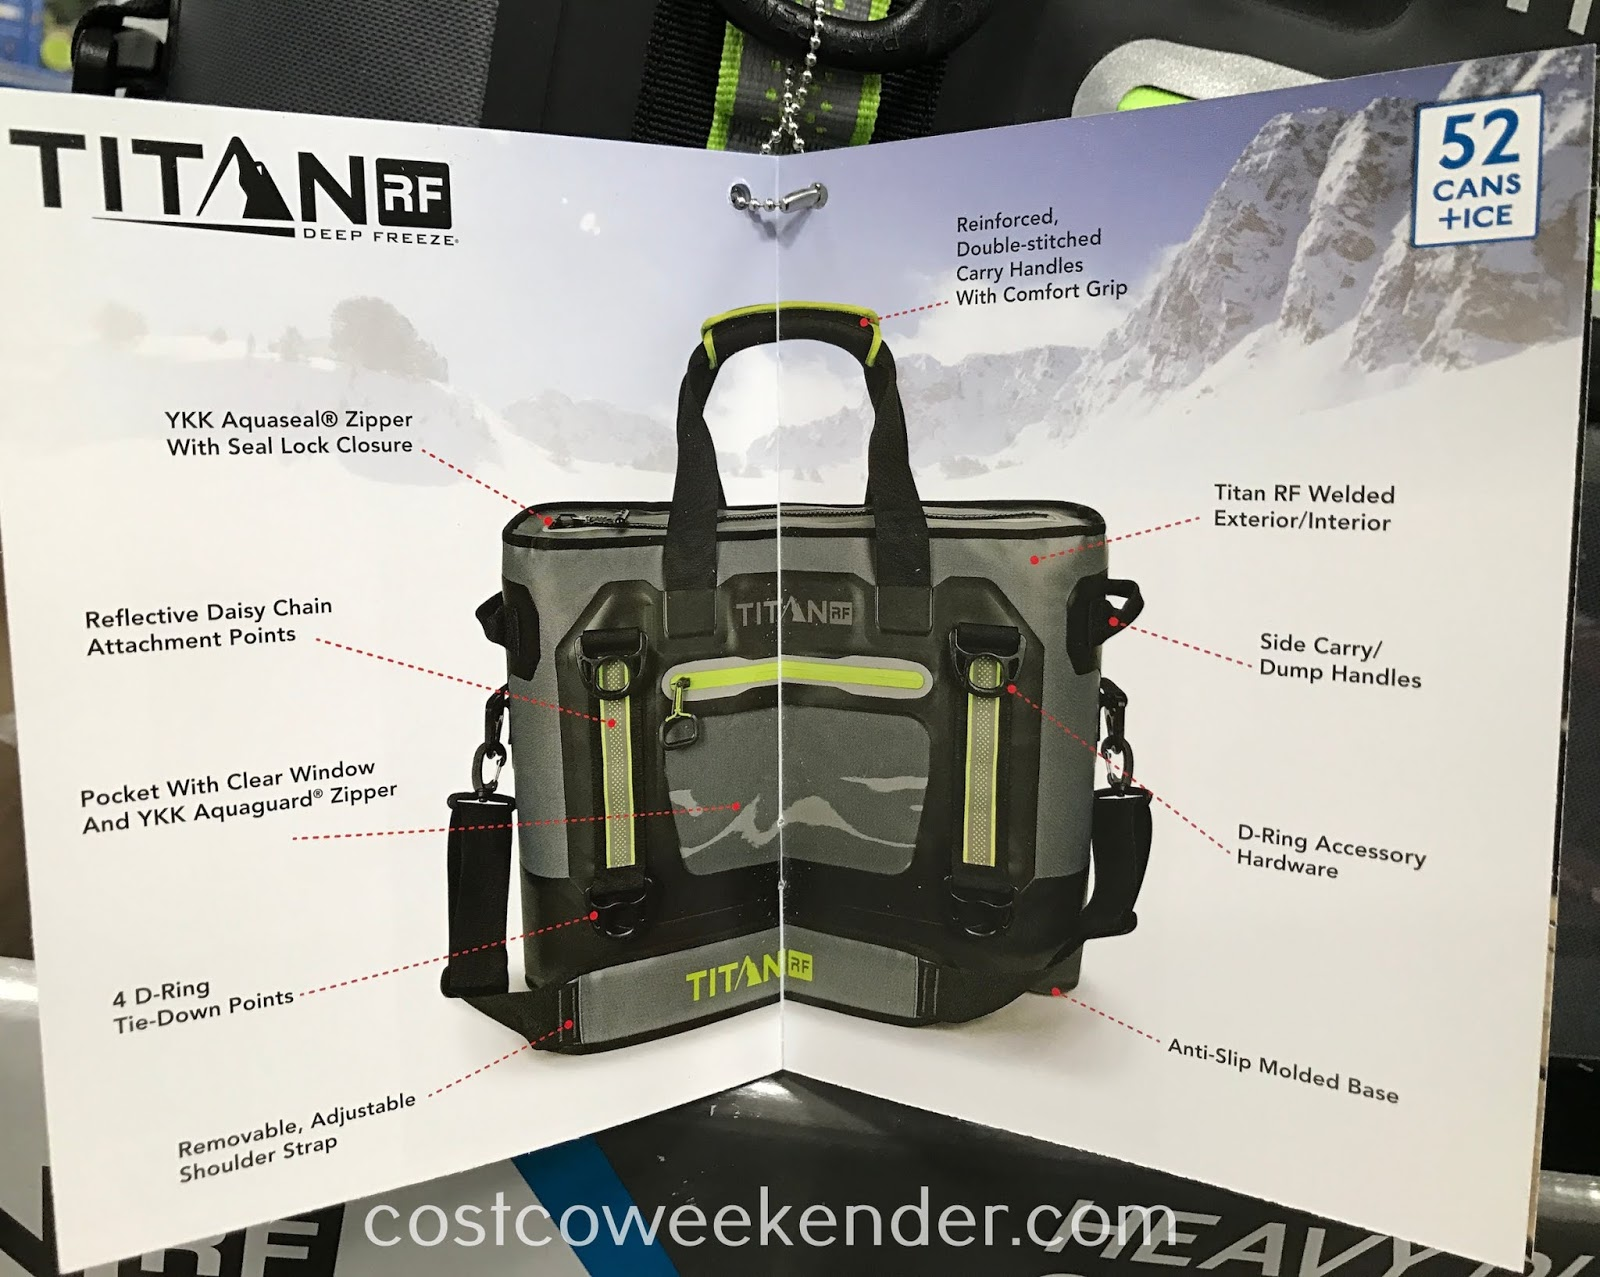 The Titan 52-can Welded Heavy Duty Cooler is not as awkward as a conventional cooler